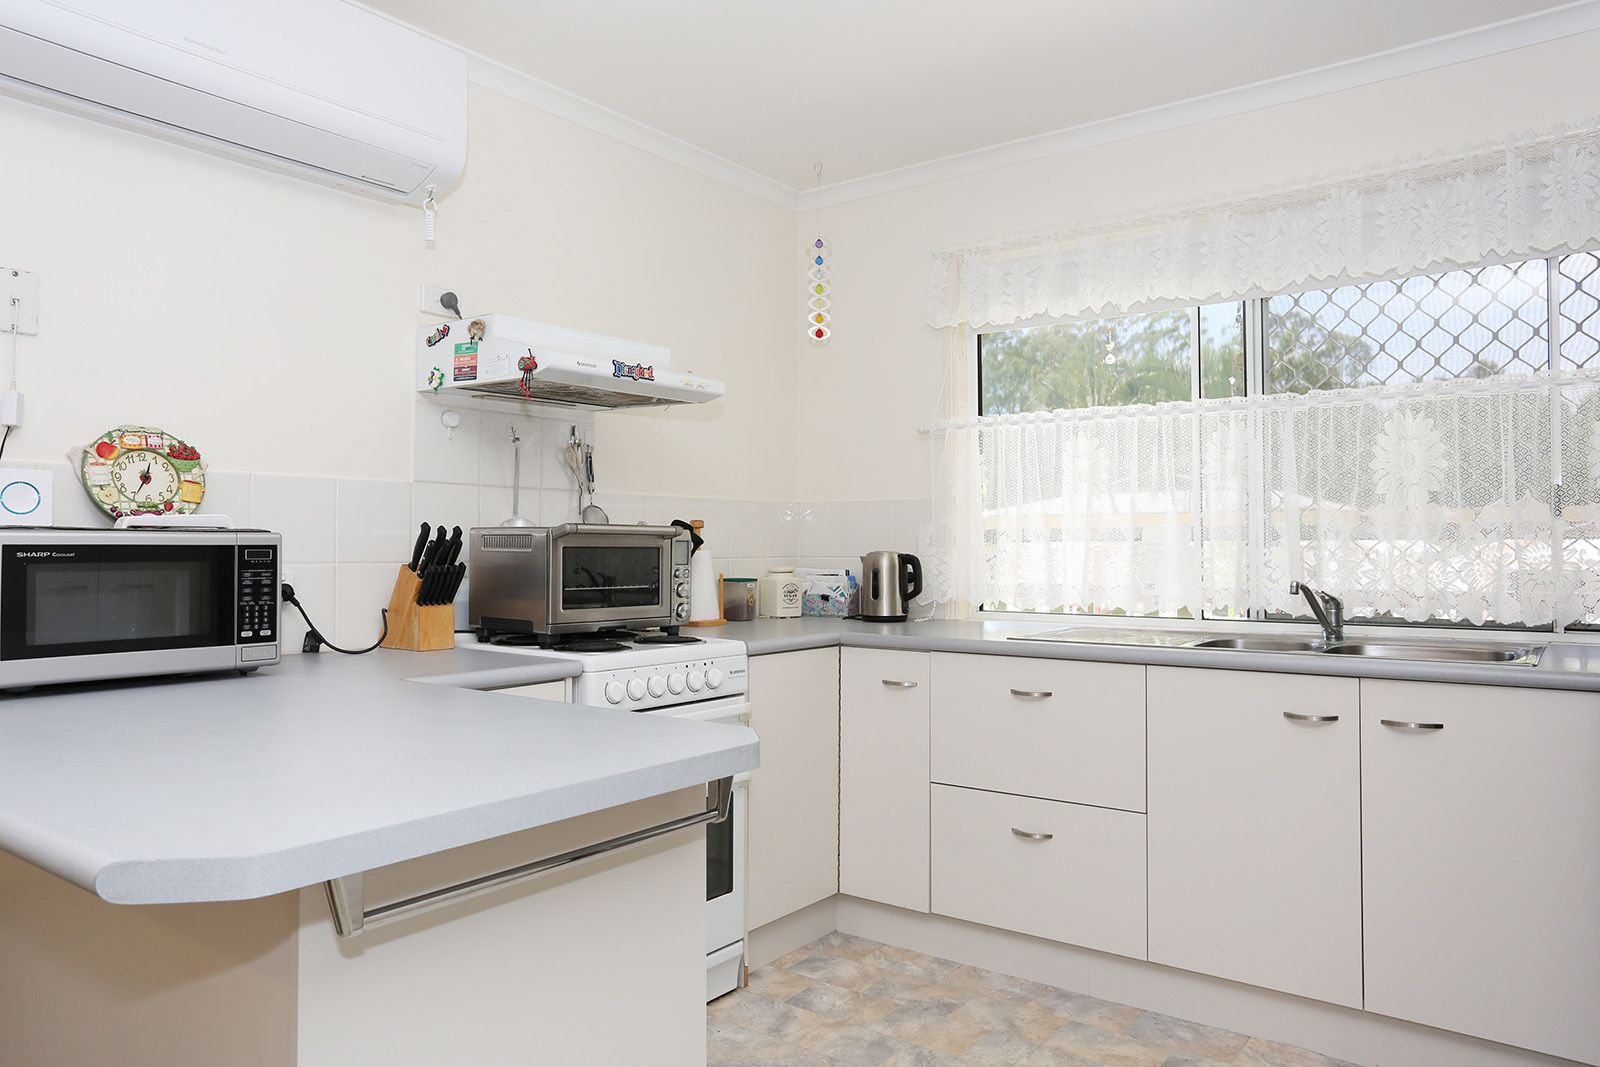 51/72 Mark Road West Little Mountain, Caloundra West QLD 4551, Image 0